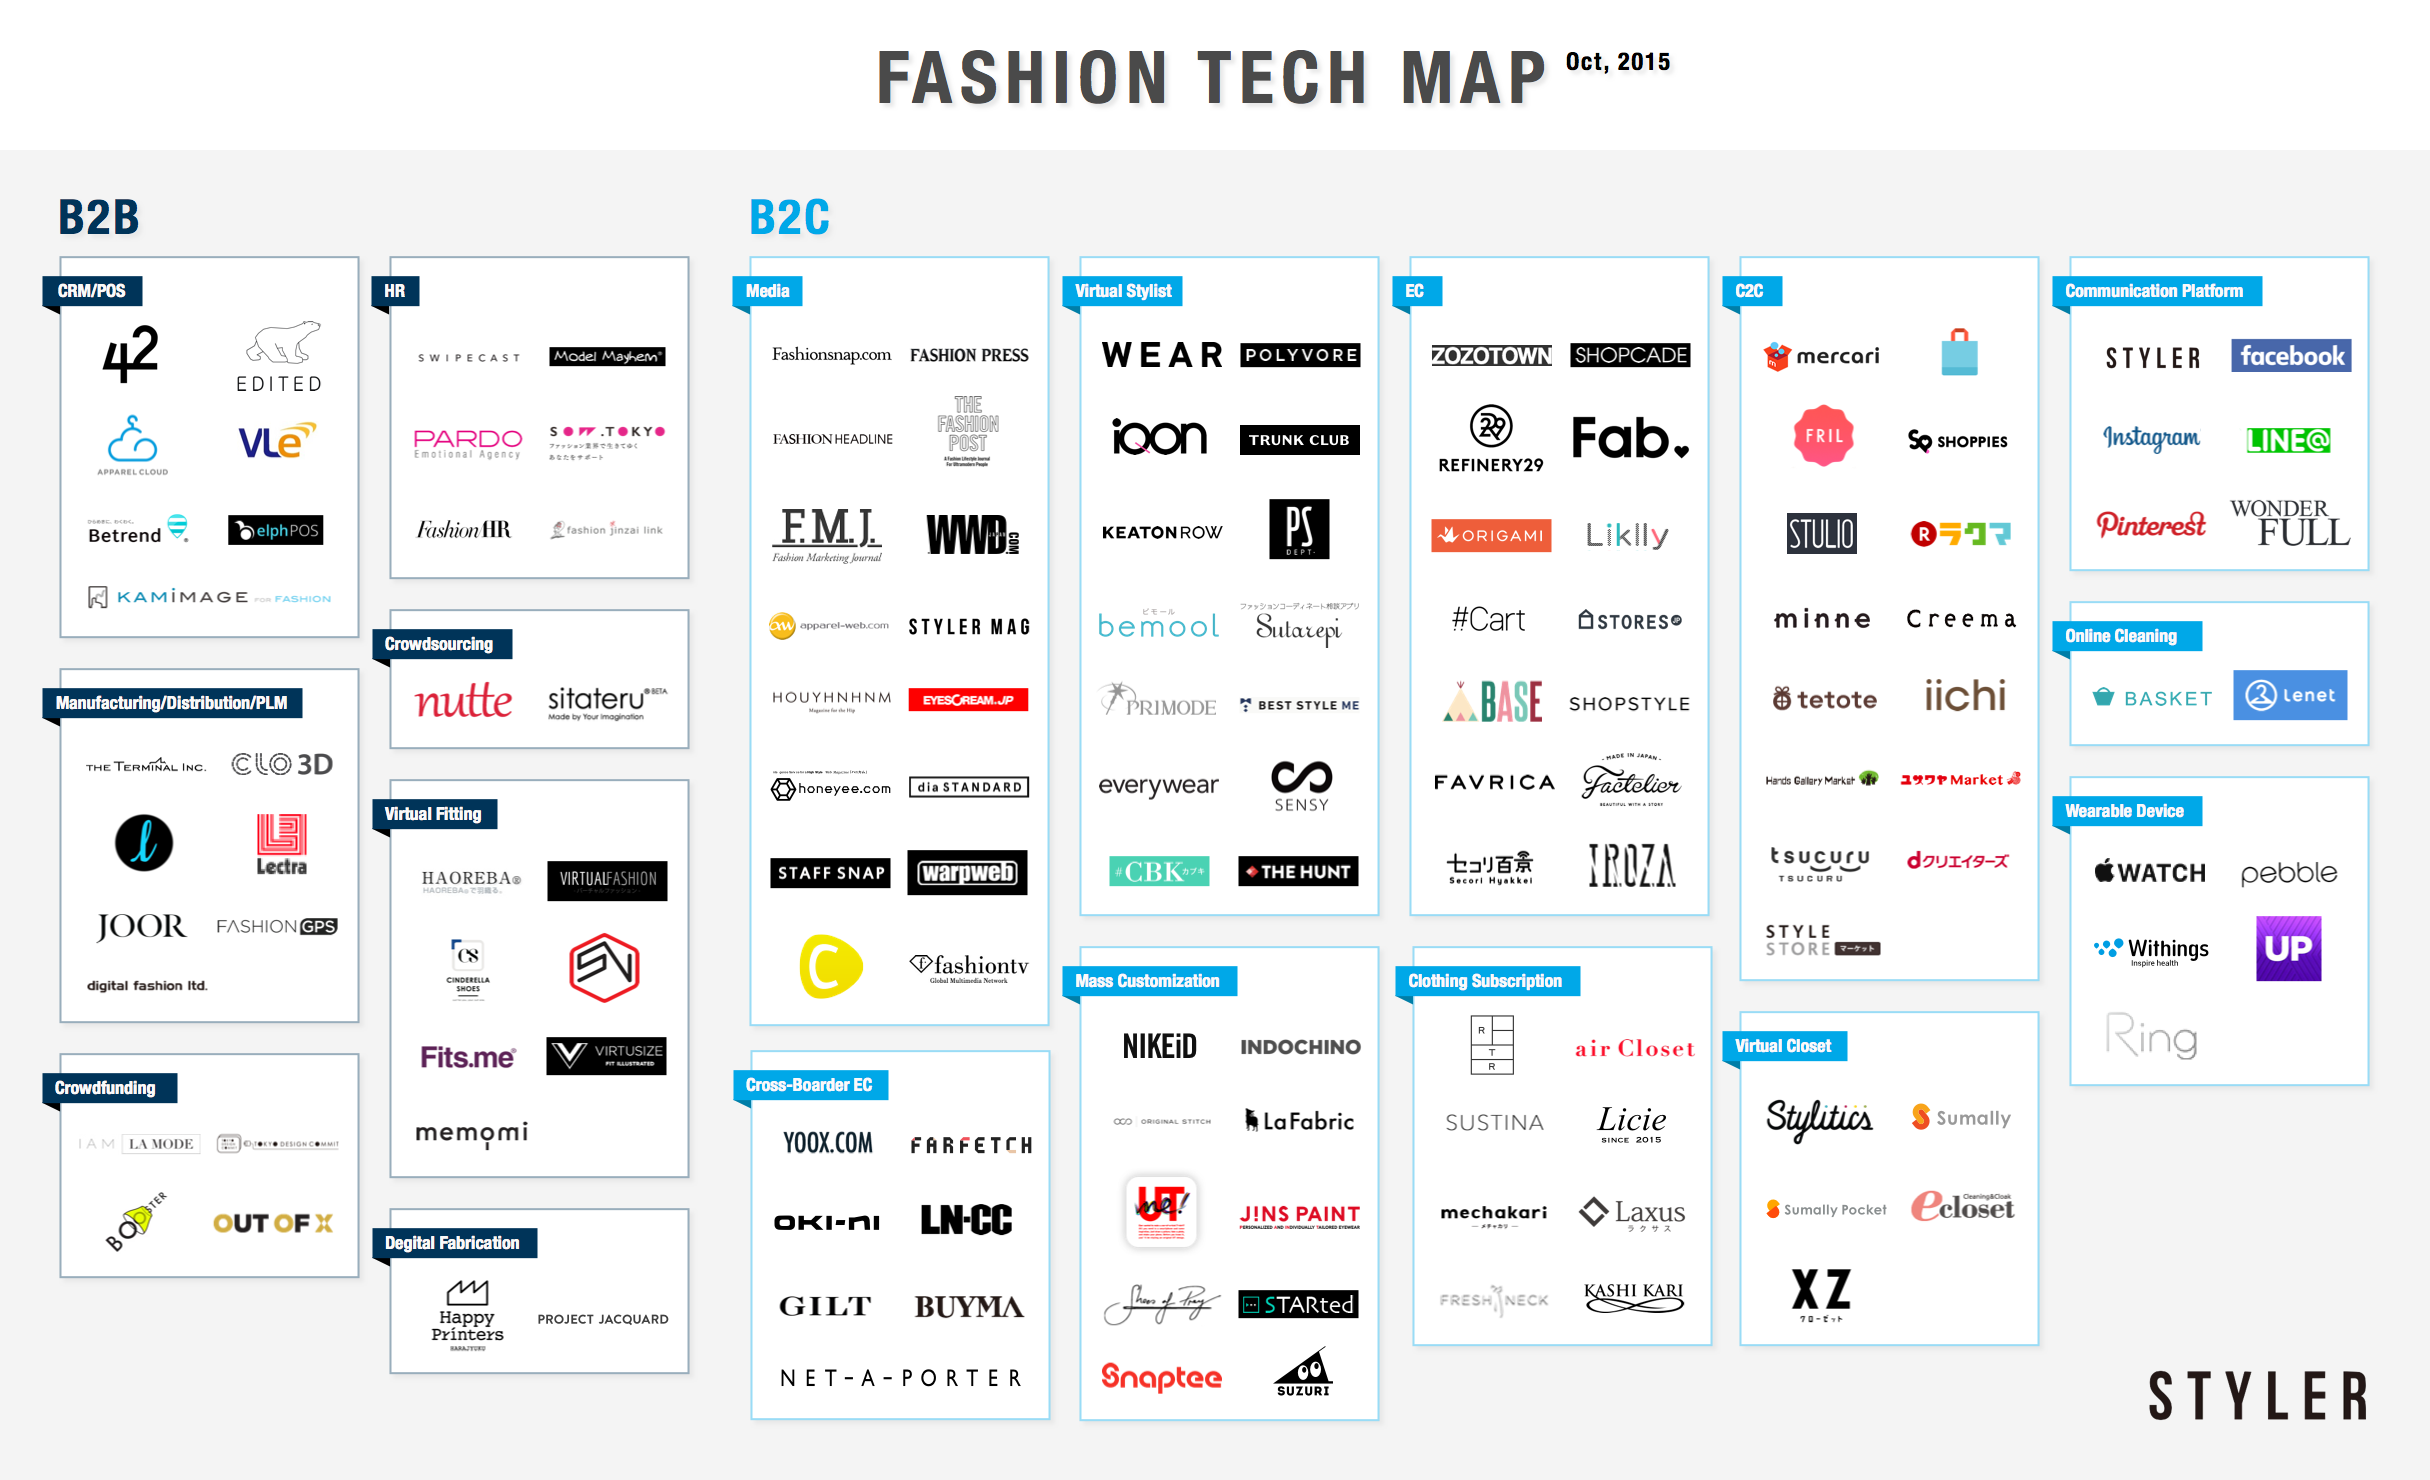 2015-fashiontech-map-by-styler